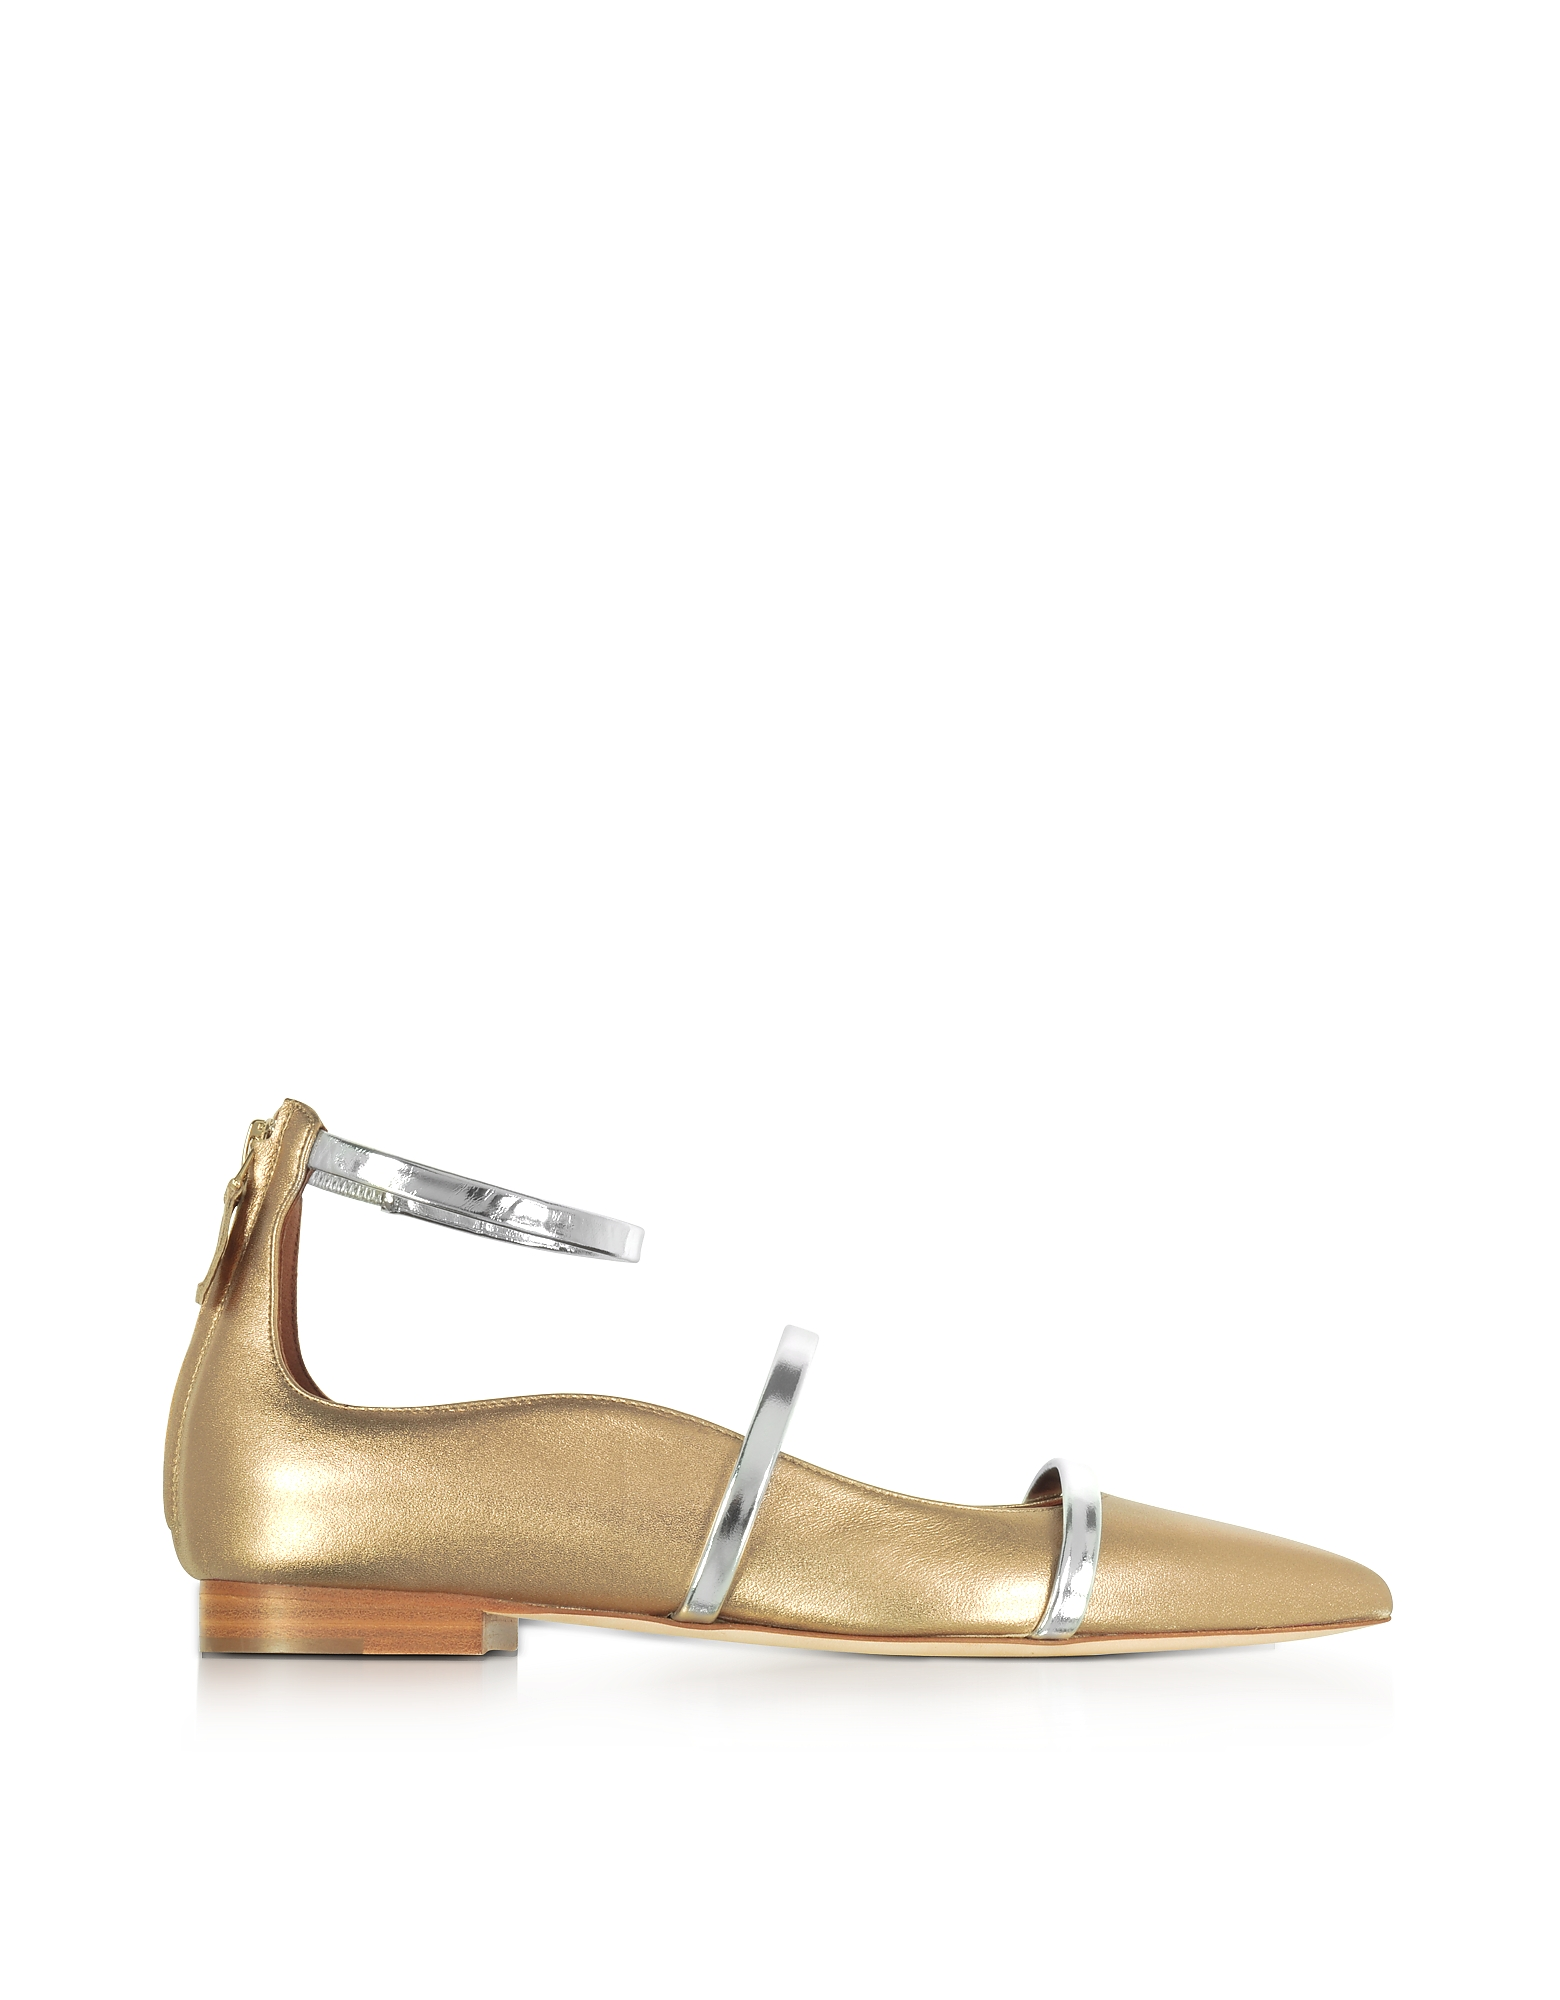 Malone Souliers Shoes, Robyn Flat Metallic Nappa Leather Ballerinas